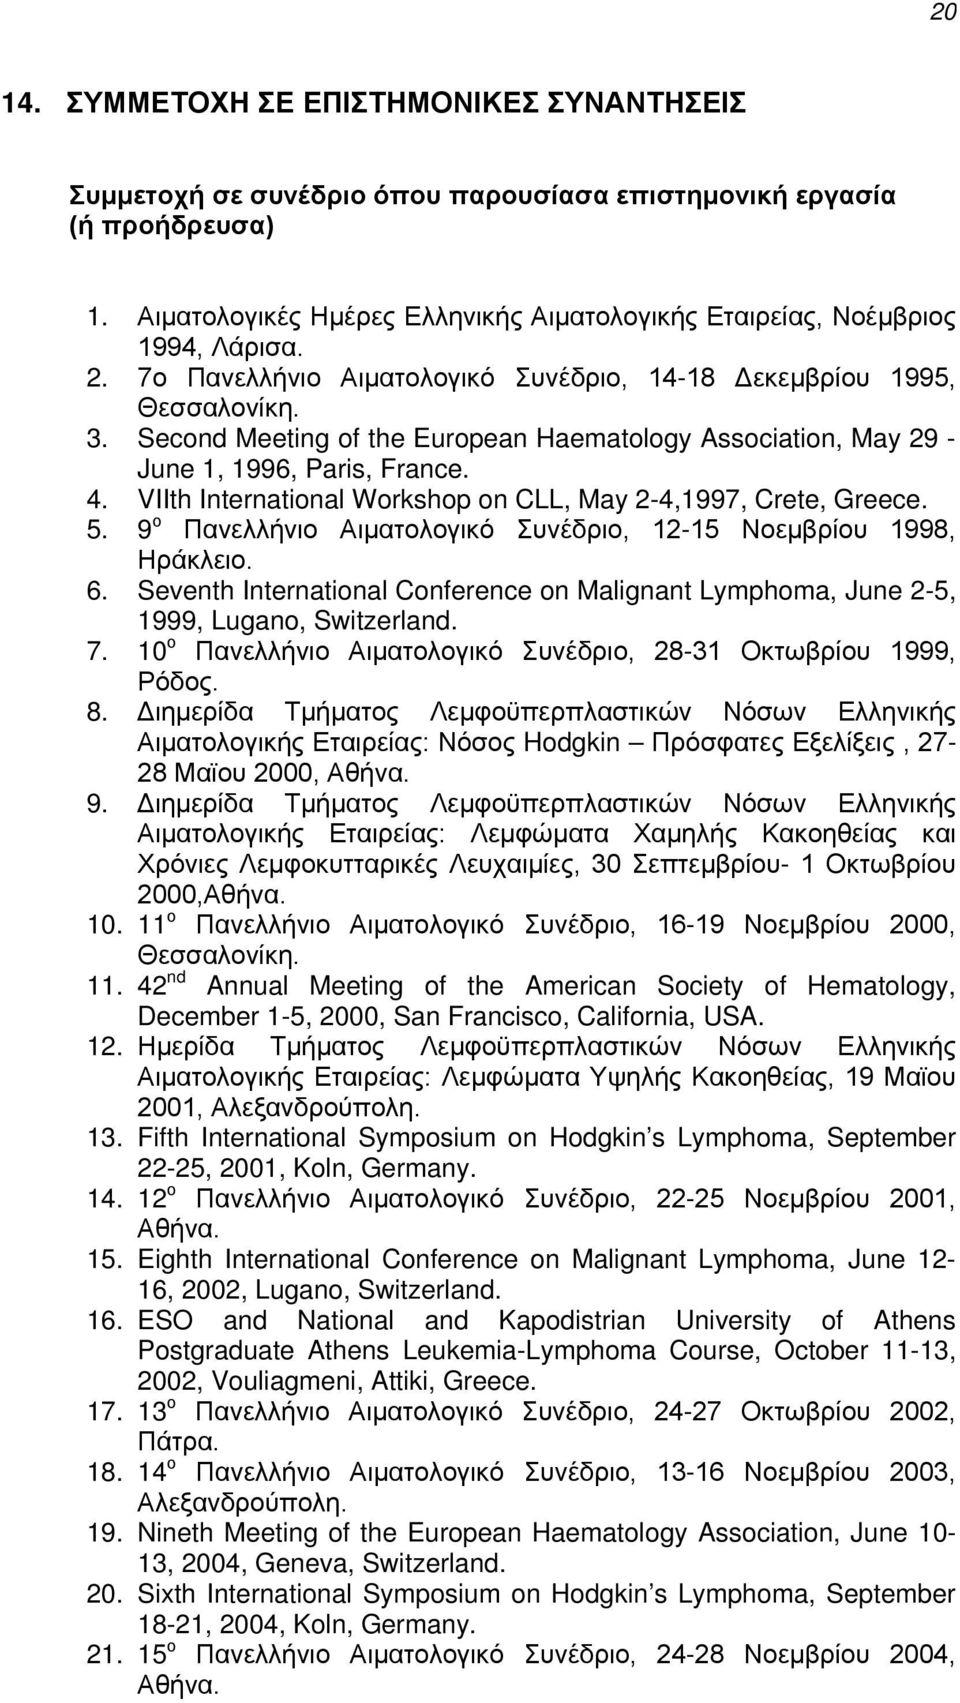 Second Meeting of the European Haematology Association, May 29 - June 1, 1996, Paris, France. 4. VIIth International Workshop on CLL, May 2-4,1997, Crete, Greece. 5.